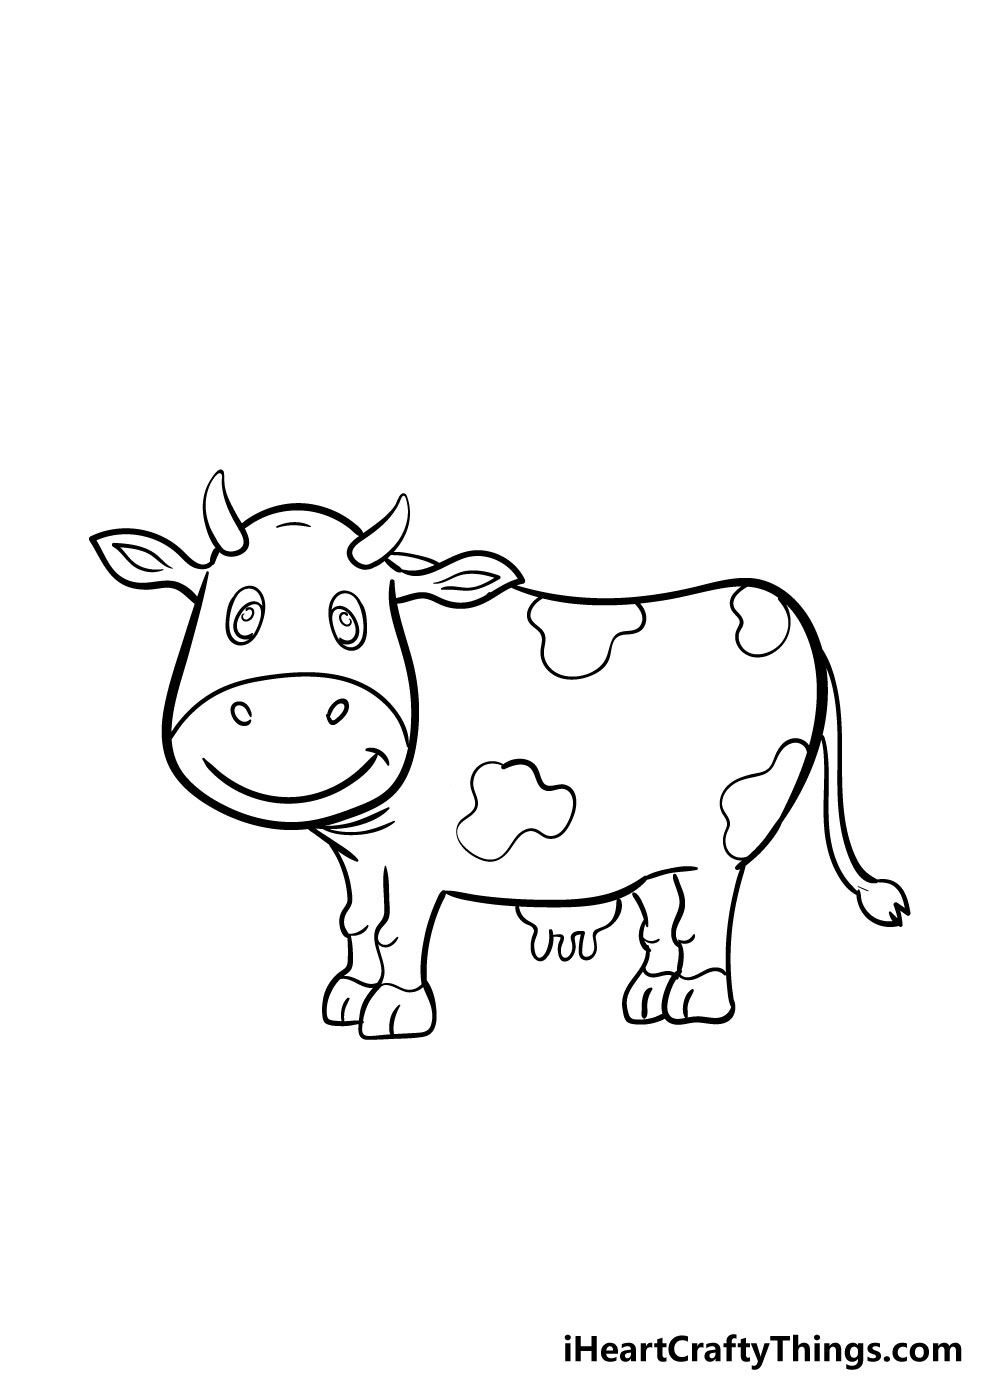 cow drawing step 8